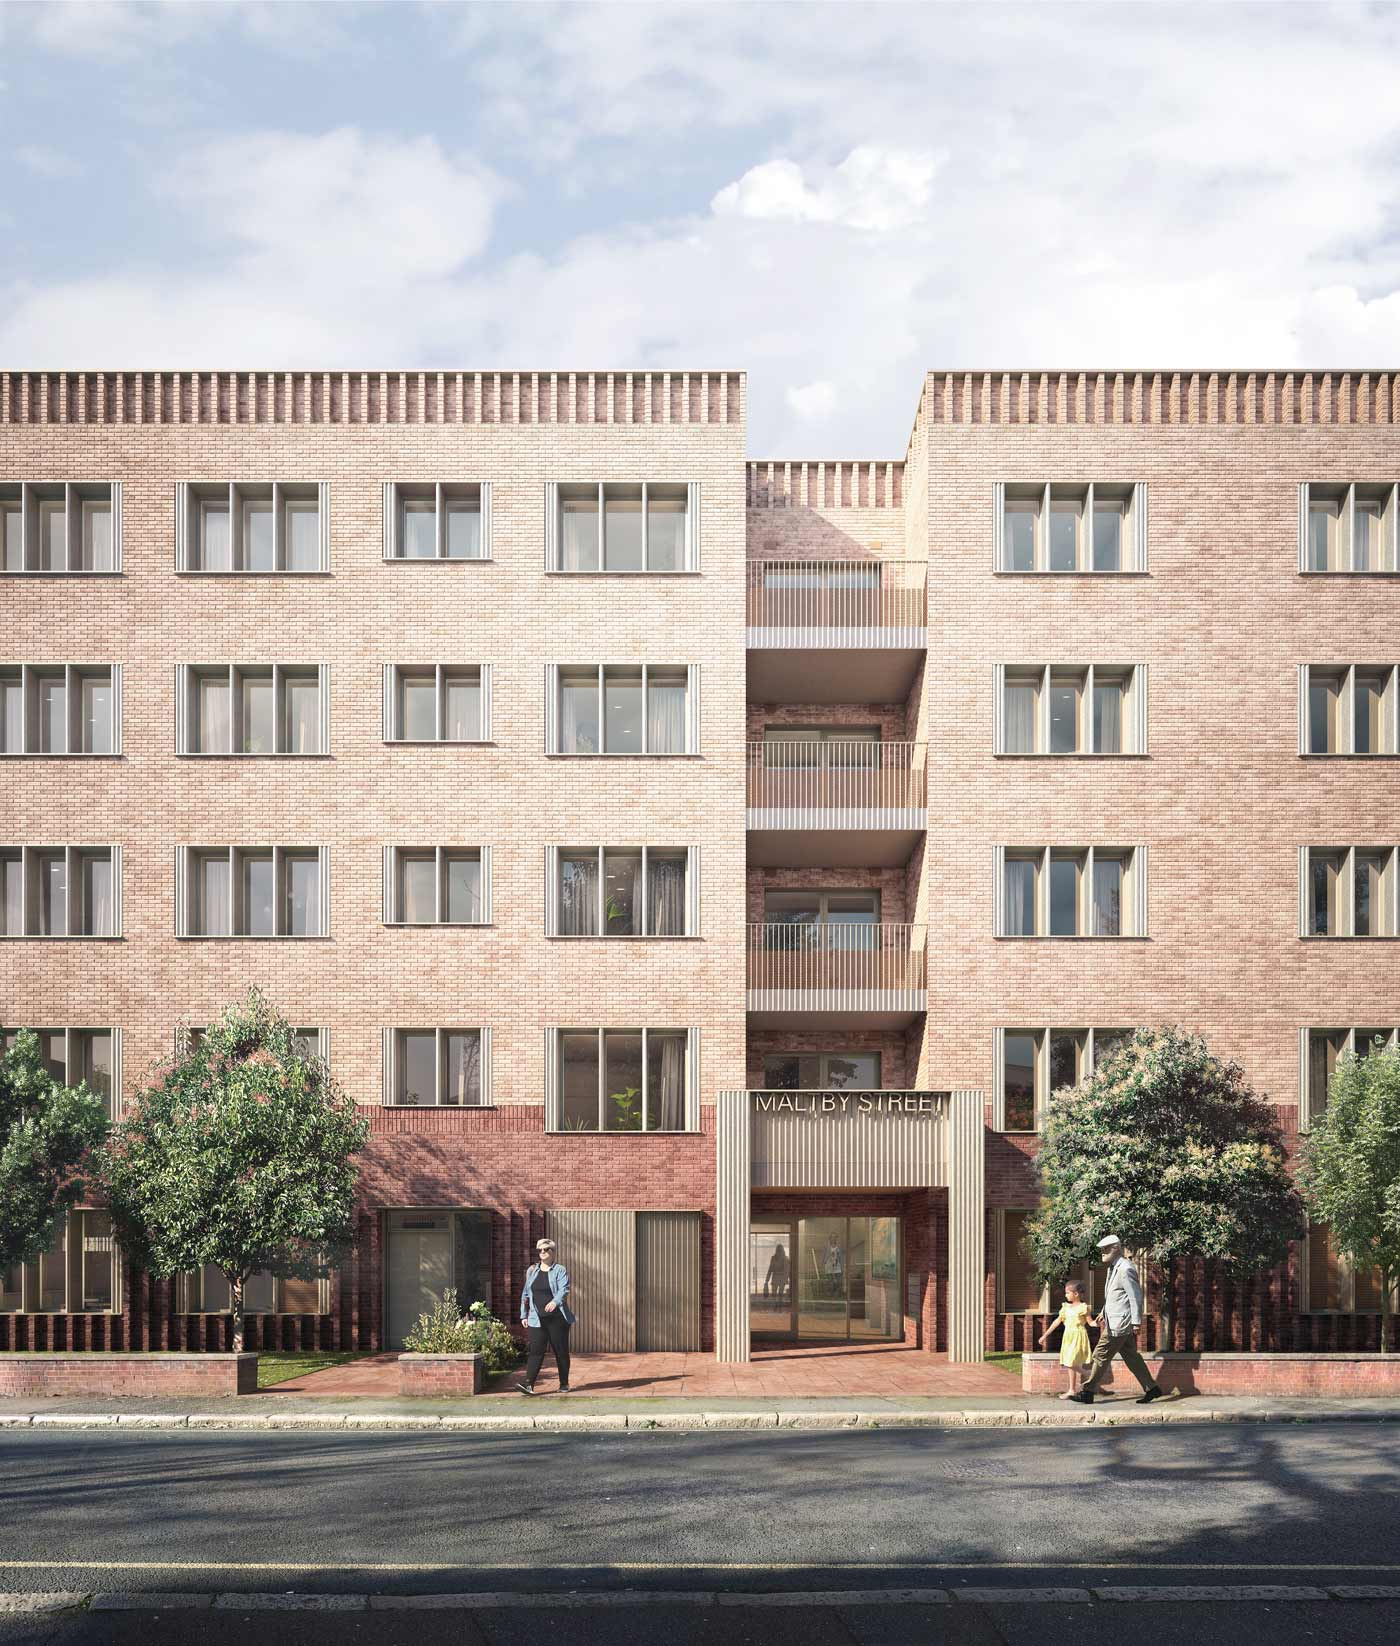 Planning submitted for affordable homes in Southwark